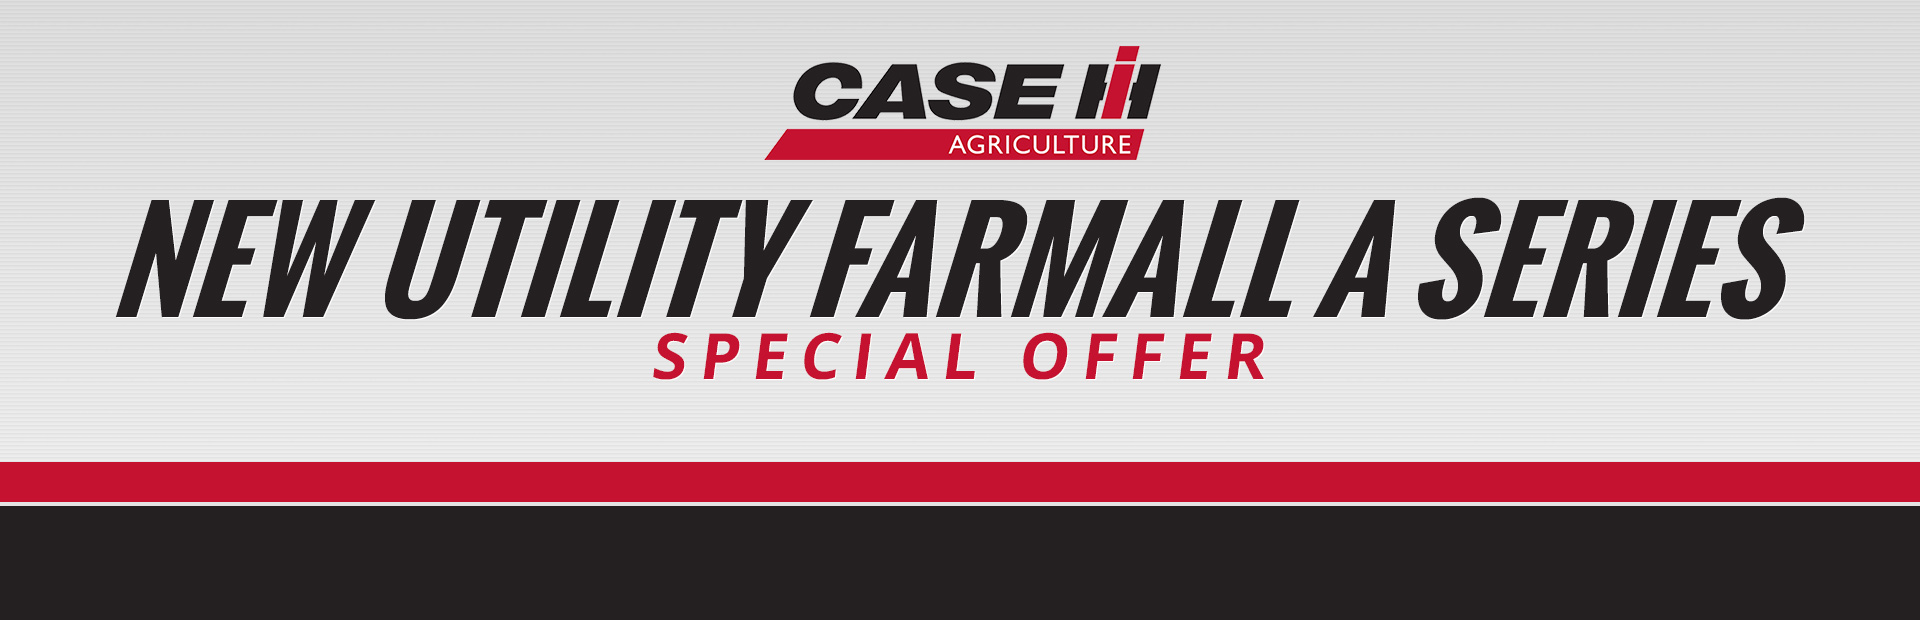 Case IH: New Utility Farmall A Series Special Offer